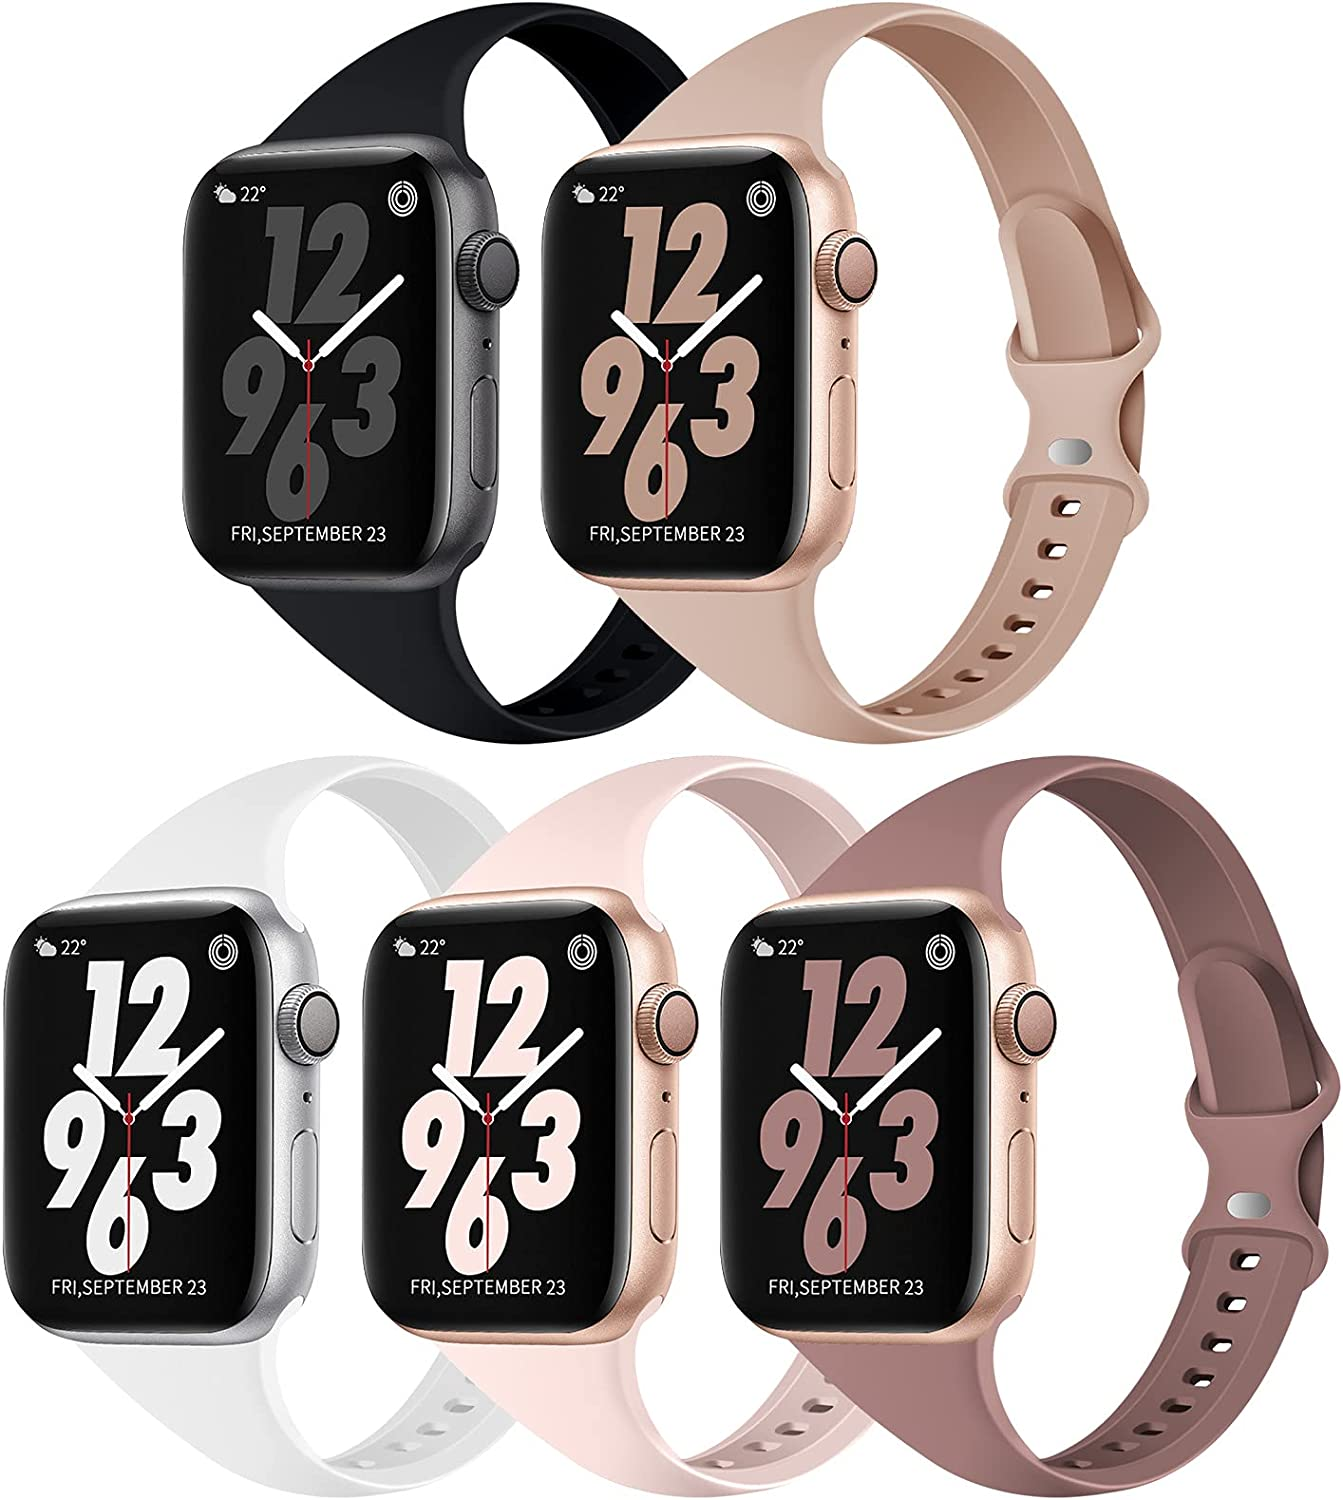 TSAAGAN 5 Pack Silicone Slim Band Compatible for Apple Watch Band 38mm 42mm 40mm 44mm, Soft Narrow Replacement Sport Strap Thin Wristband Accessory for iWatch Series SE/6/5/4/3/2/1 Women Men